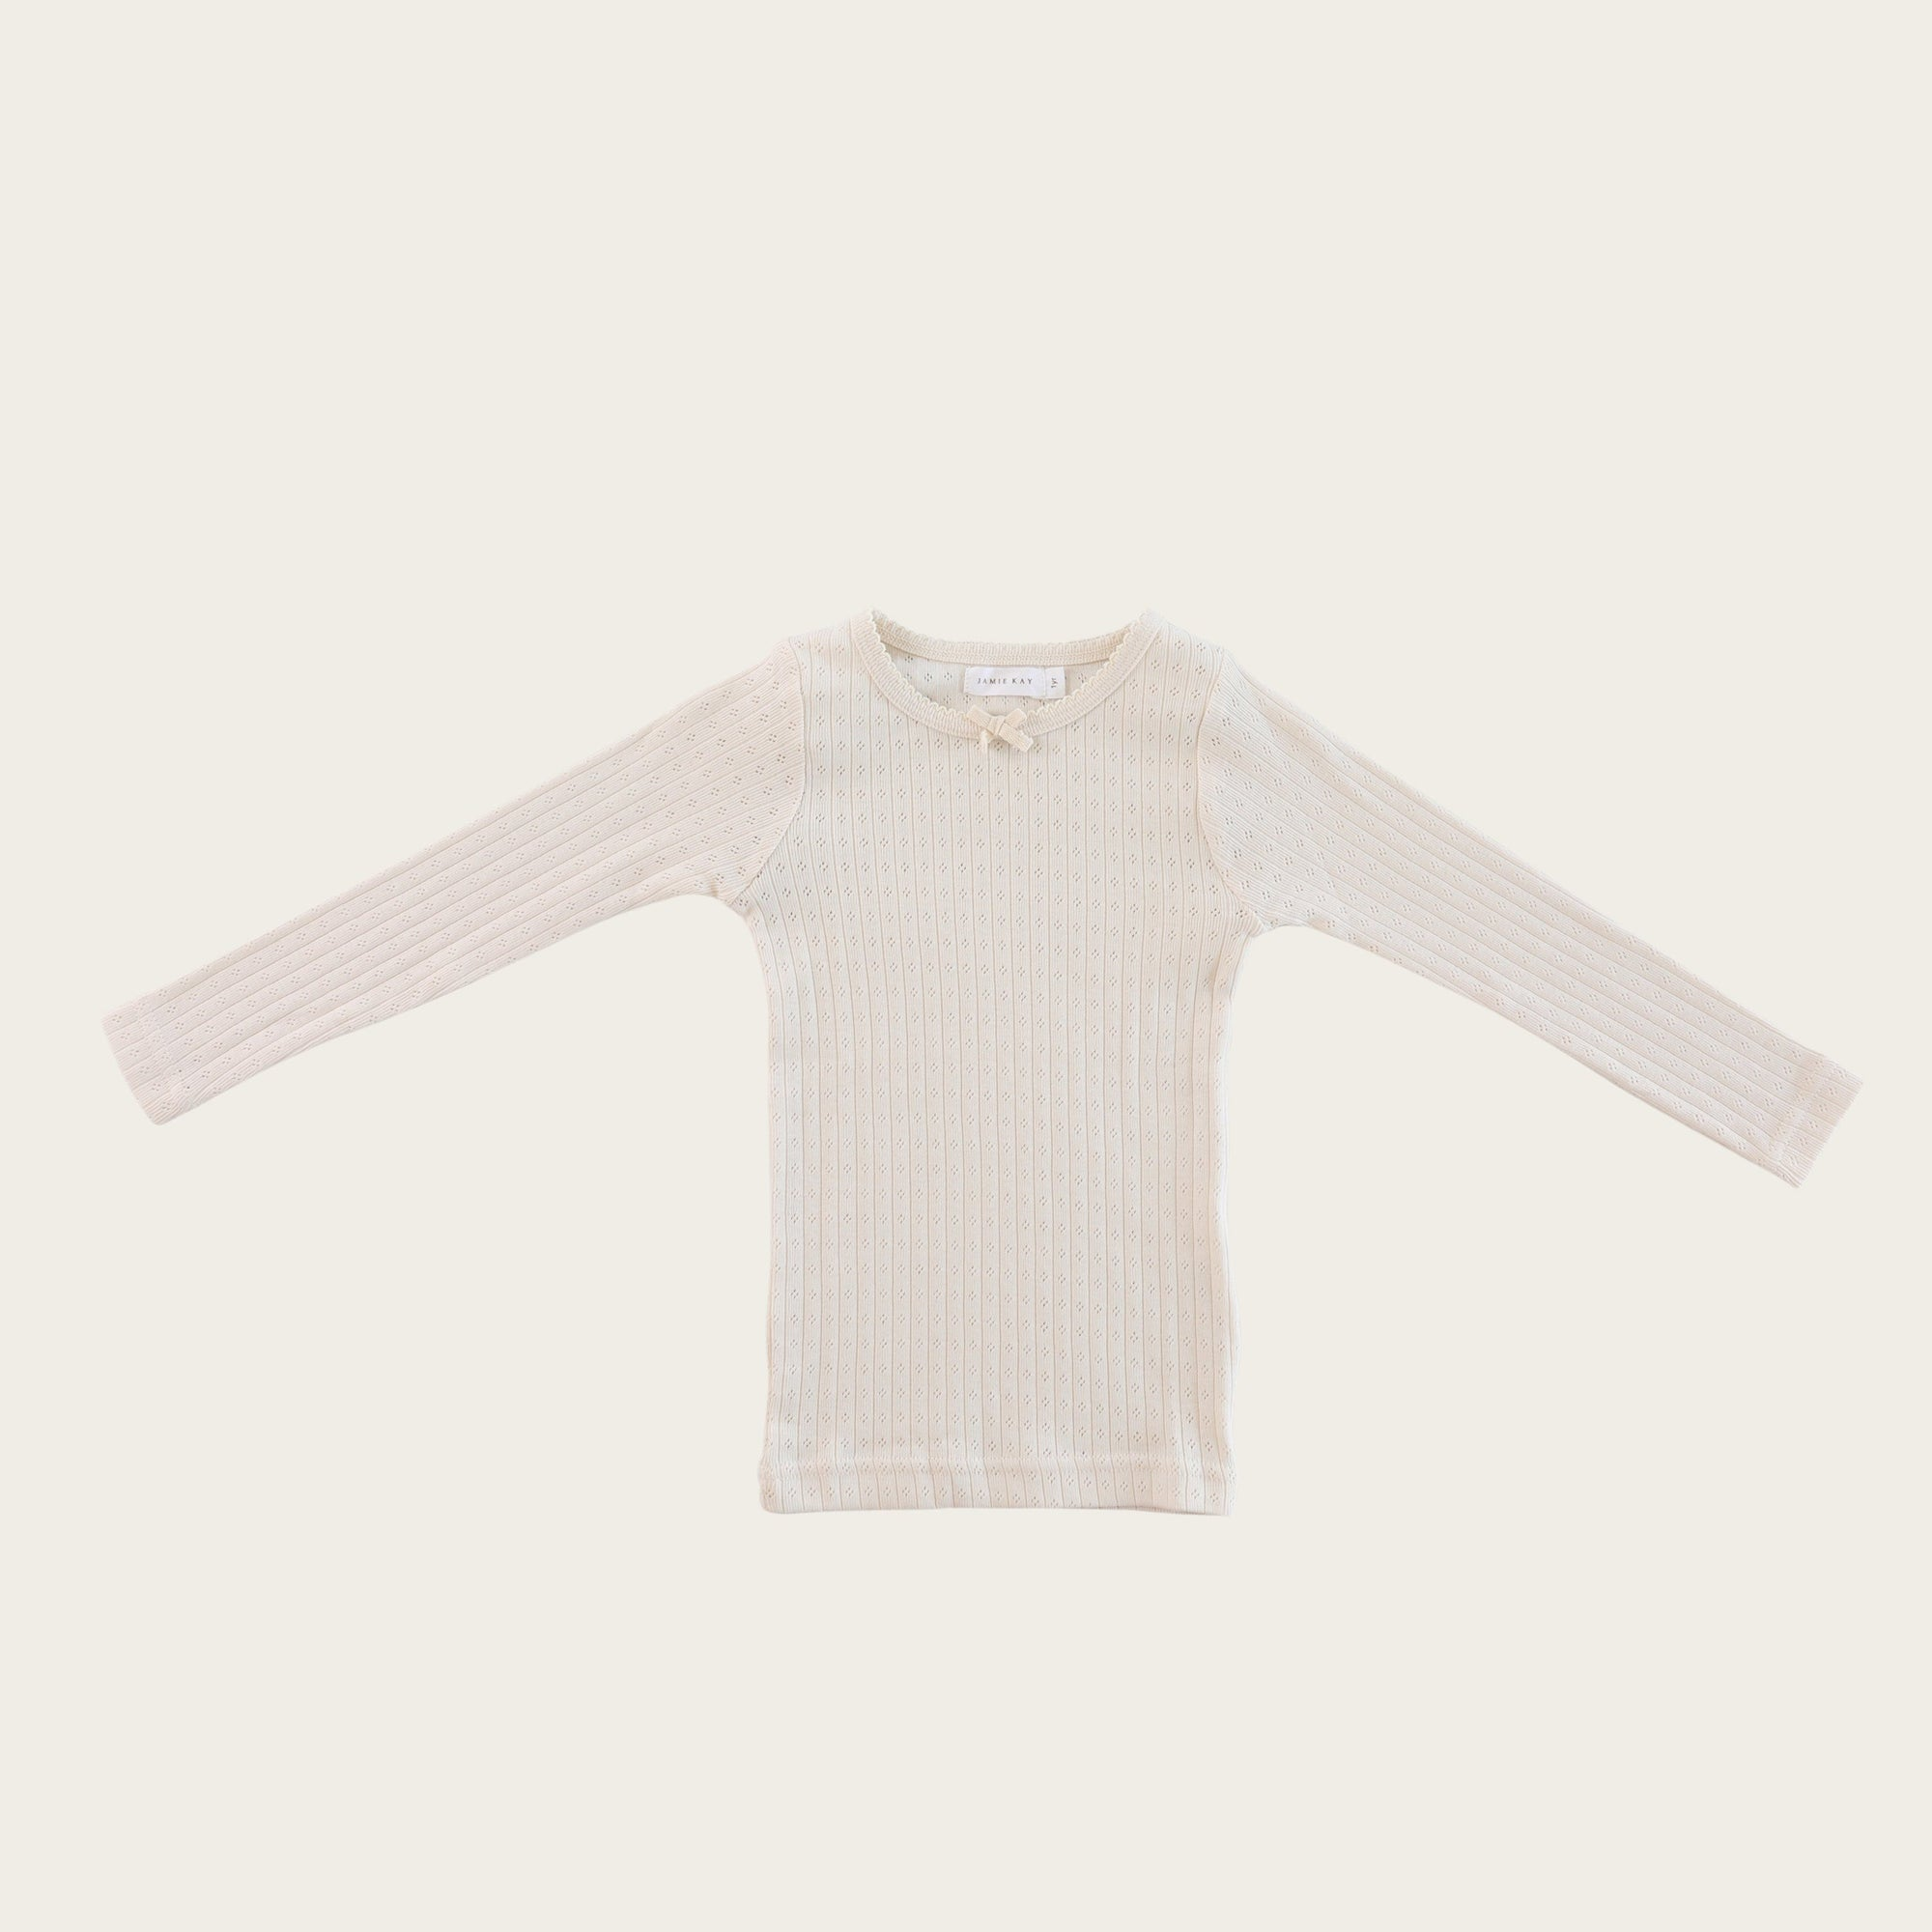 Pointelle Lace Top (Ivory)